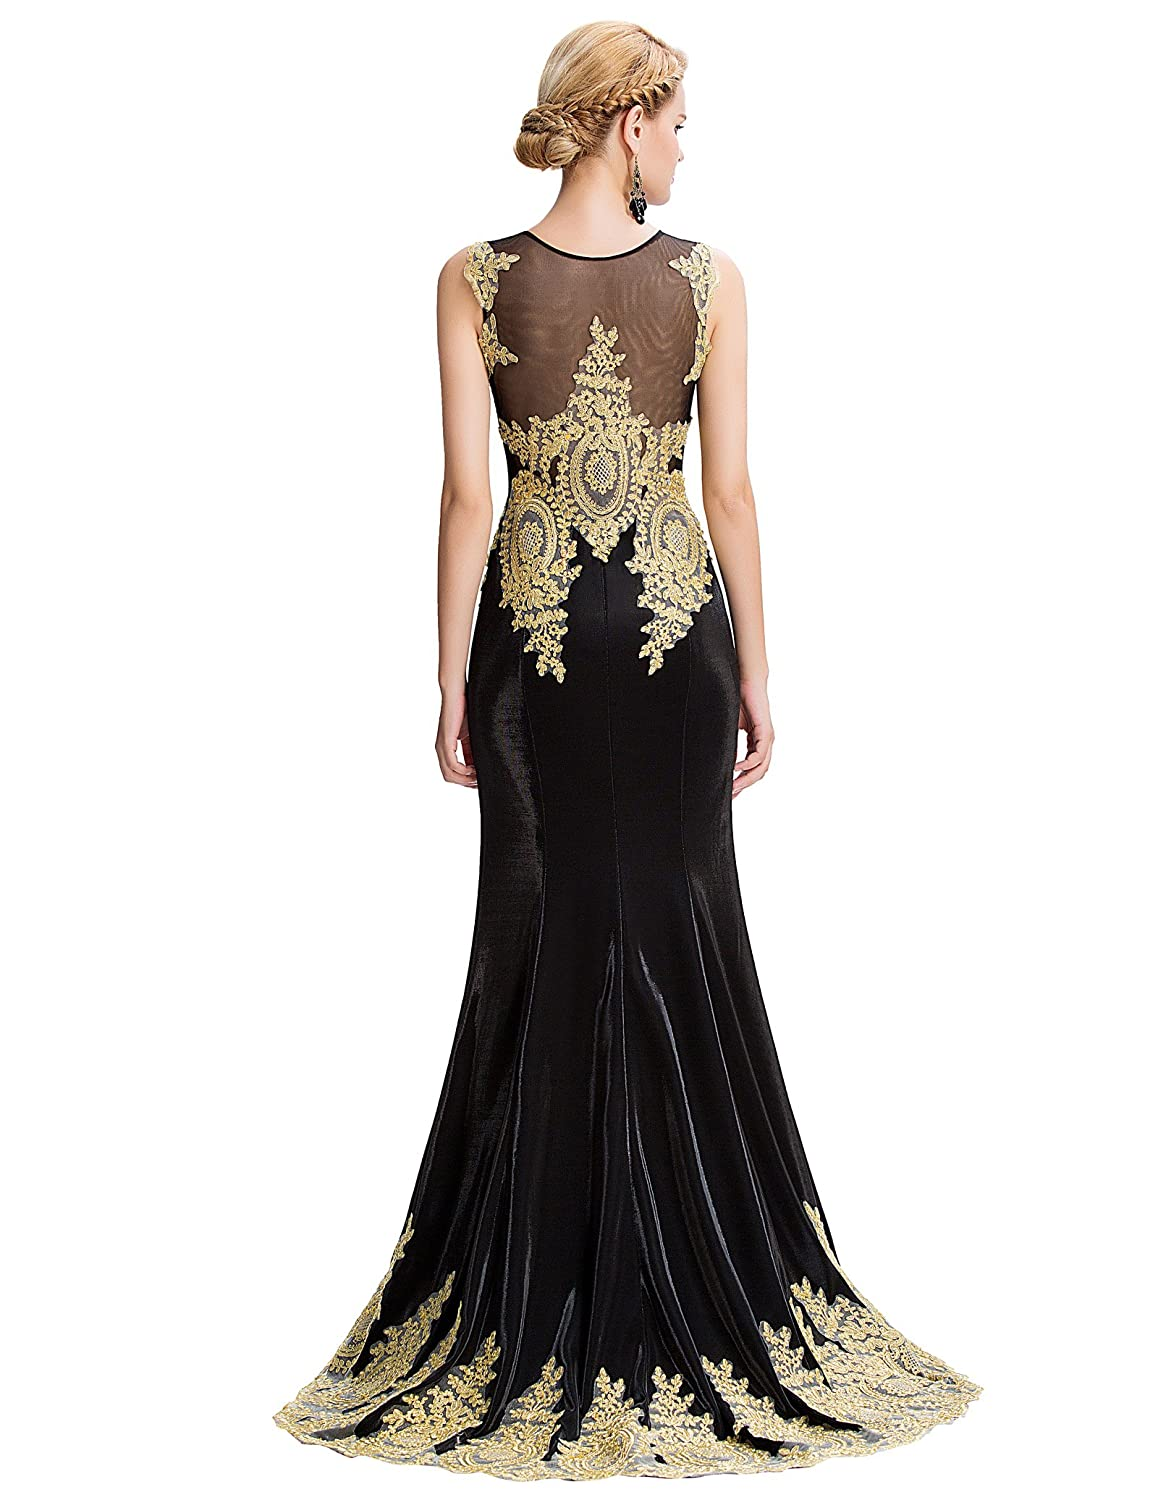 Grace Karin® Womens Sleeveless Mermaid Wedding Dress with Trains Golden Appliques Ball Gown: Amazon.co.uk: Clothing